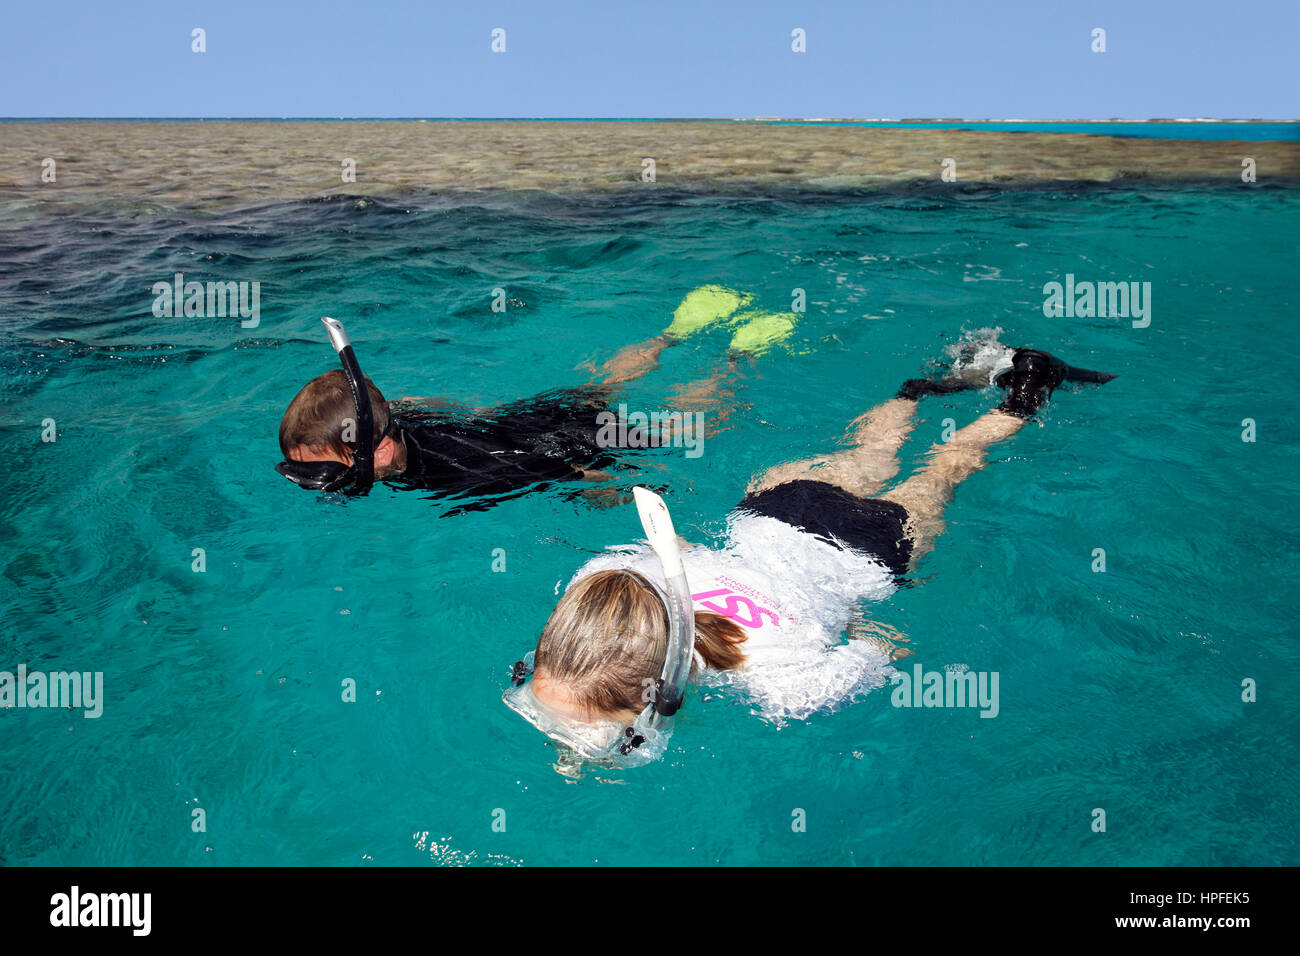 Man, Woman snorkeling, Coral Reef, Red Sea, Egypt - Stock Image